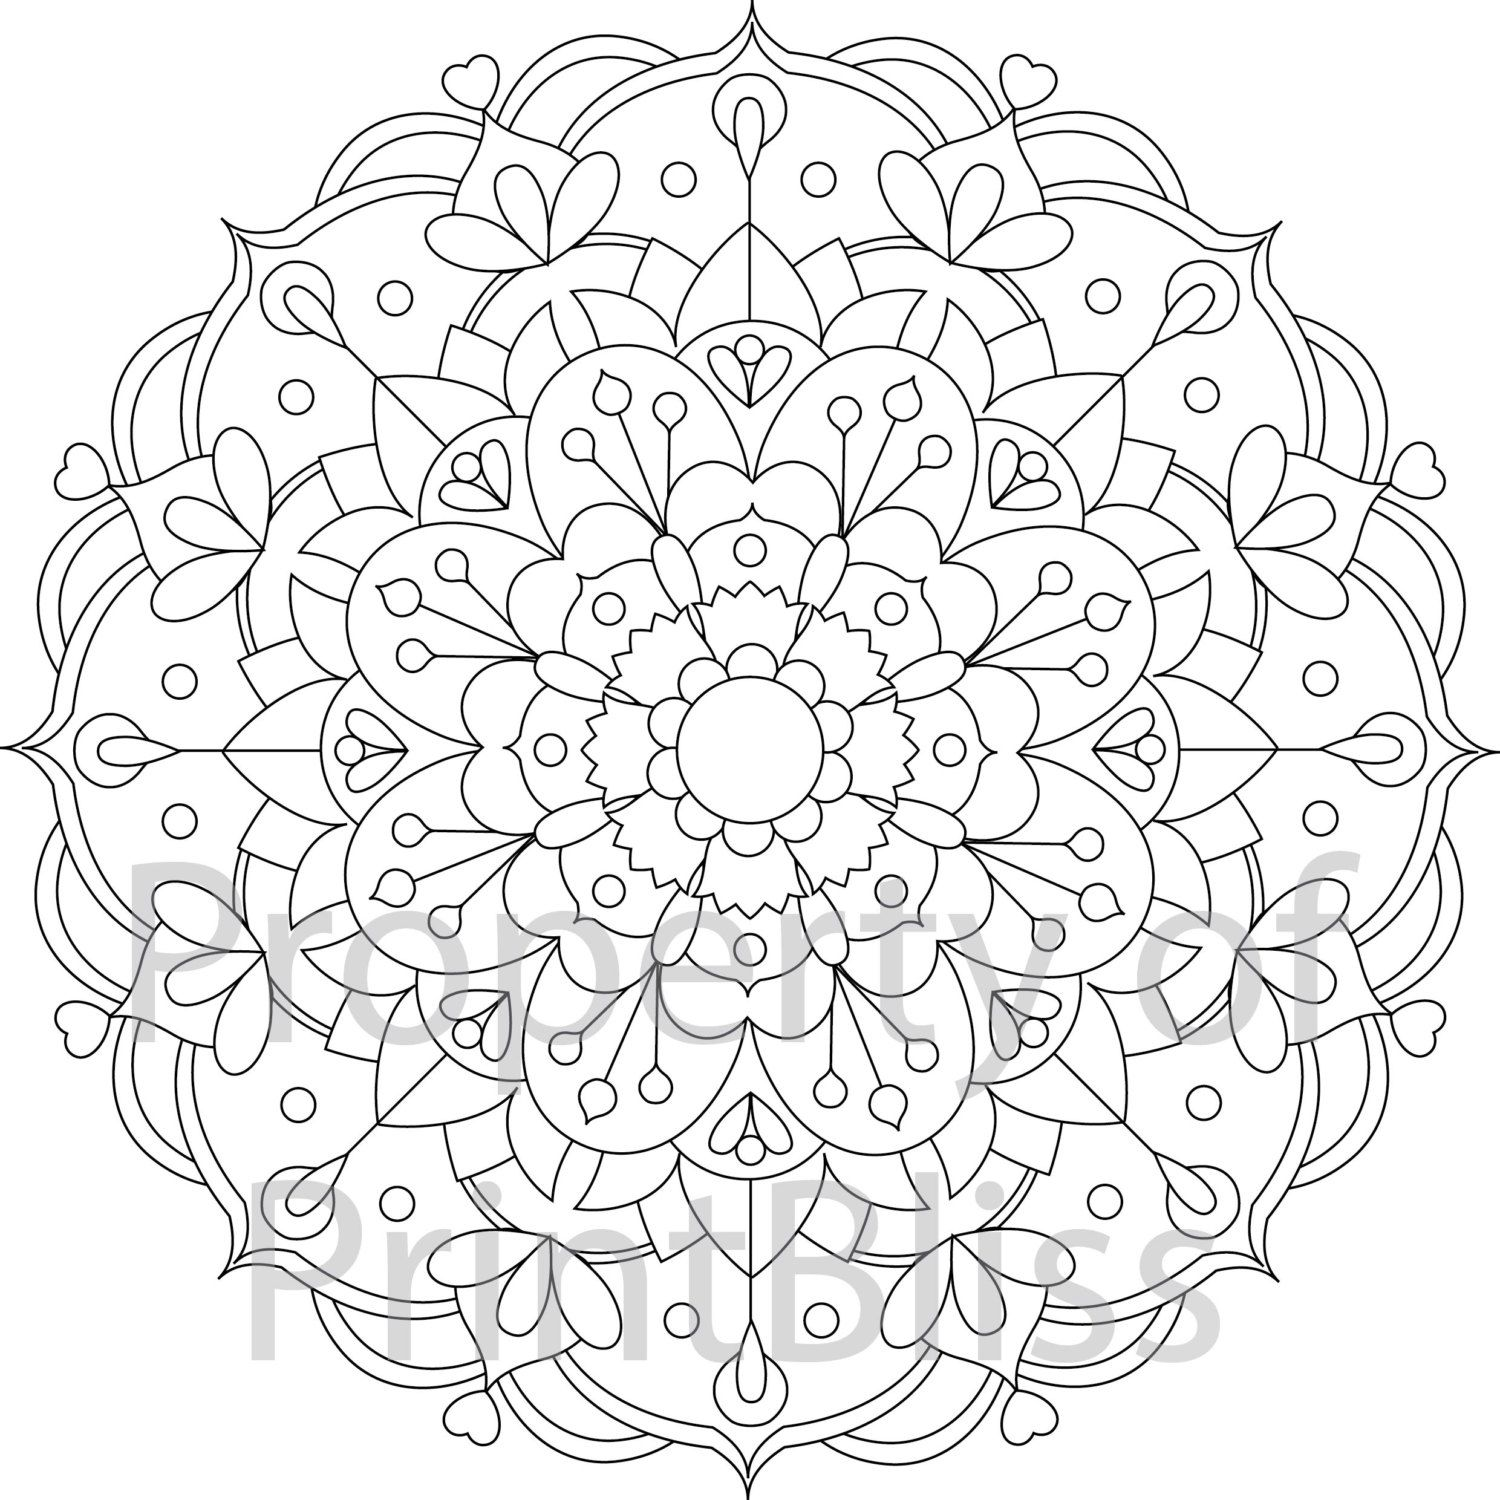 23 Flower Mandala Printable Coloring Page Etsy Mandala Coloring Books Mandala Coloring Mandala Coloring Pages